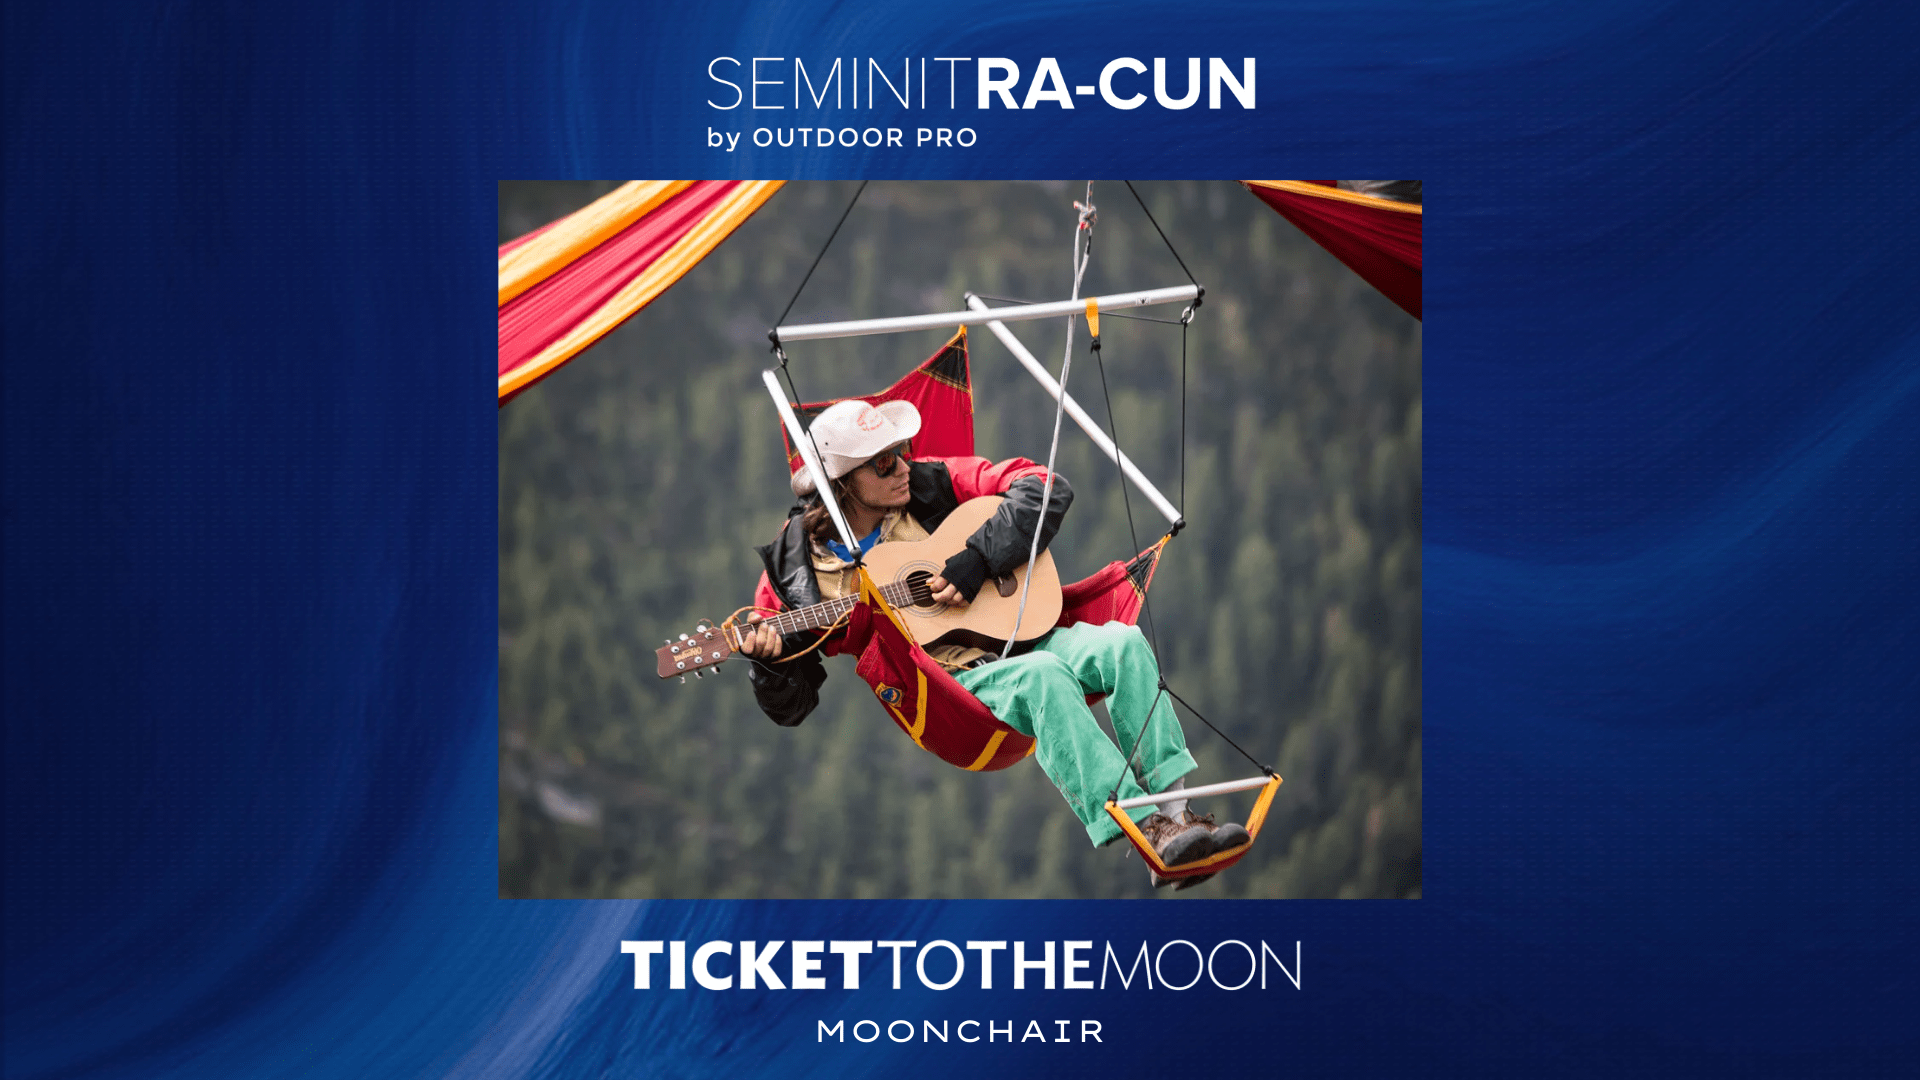 𝗦𝗘𝗠𝗜𝗡𝗜𝗧 𝗥𝗔-𝗖𝗨𝗡 : TICKET TO THE MOON MOONCHAIR